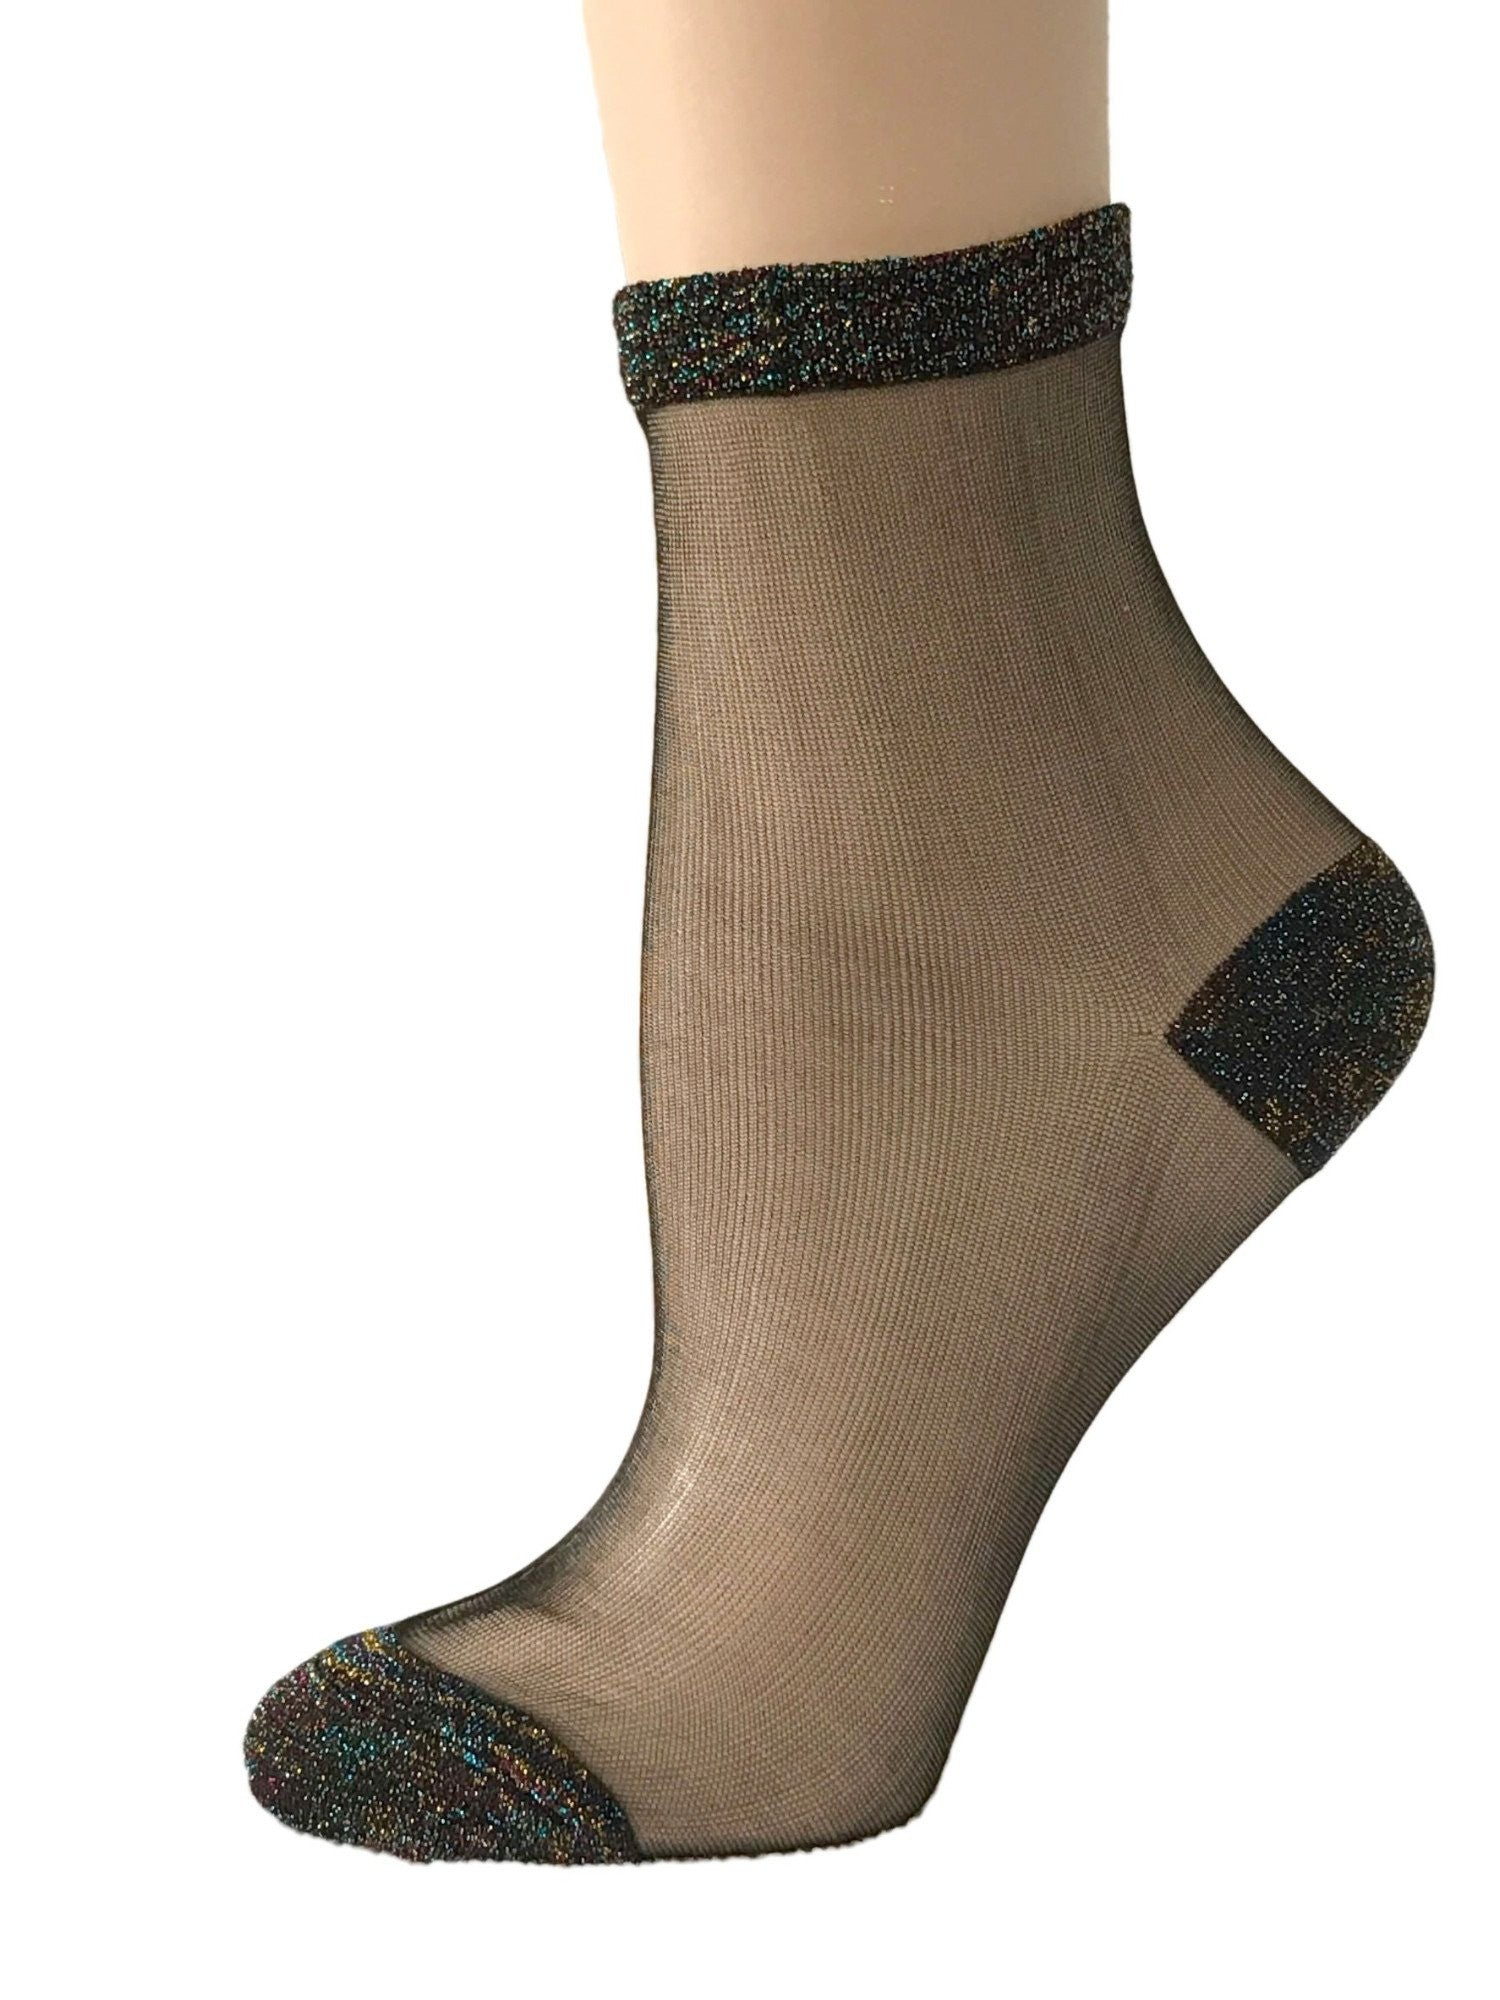 Gorgeous Multi-Coloured Glitter Socks - Global Trendz Fashion®